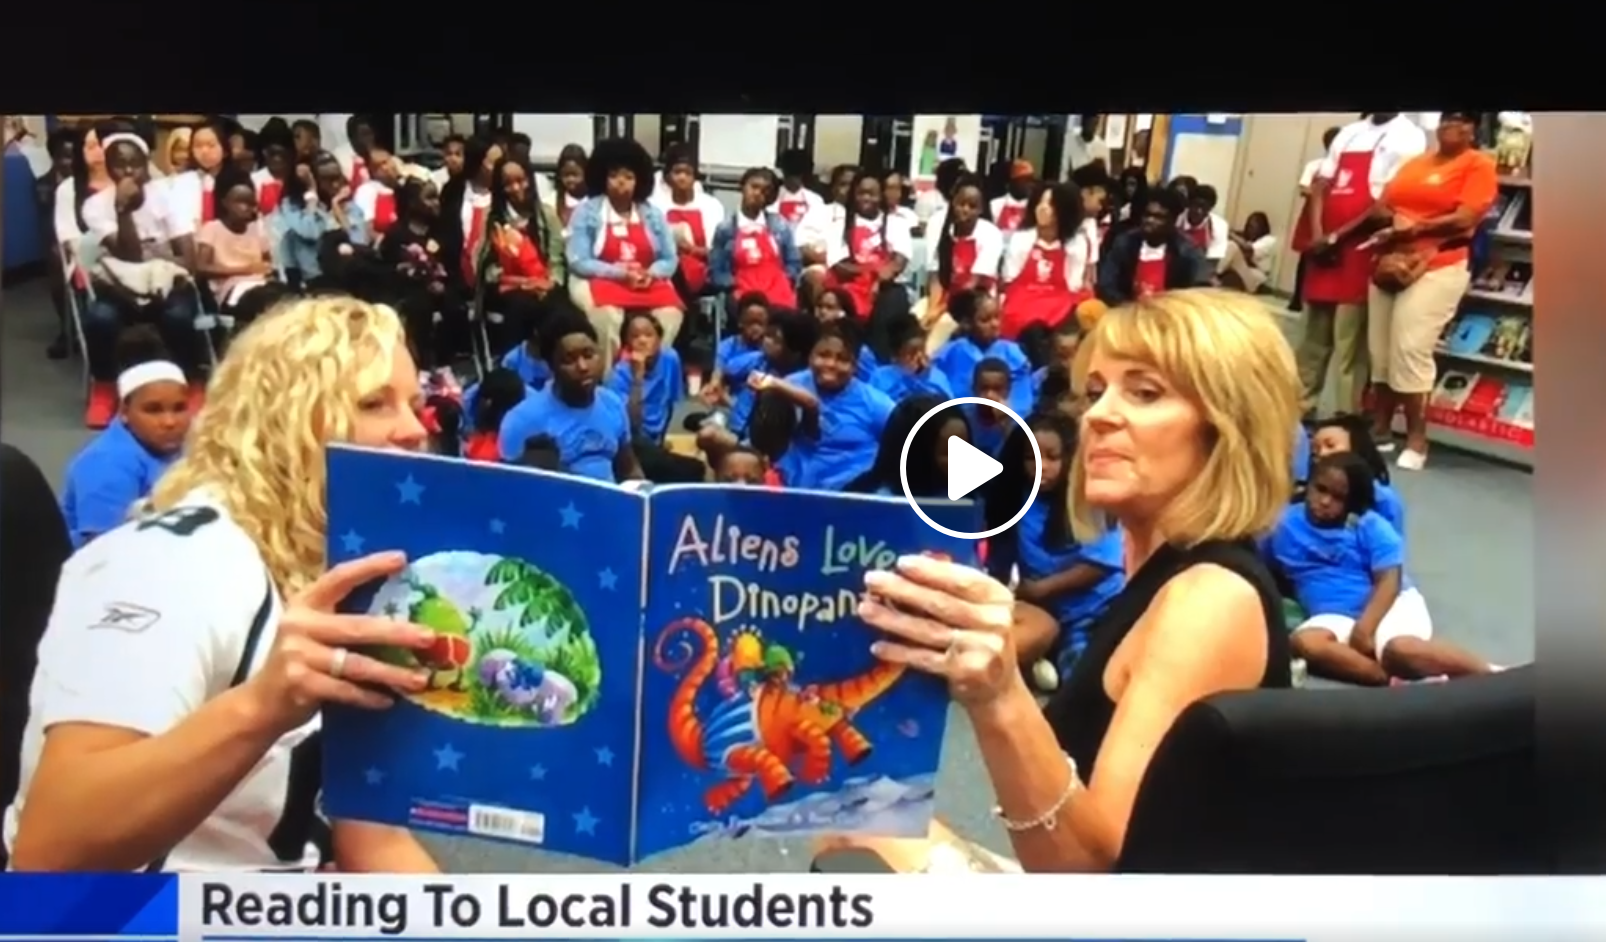 WJXT anchor Mary Baer, First Lady of Jacksonville Molly Curry, and others serve as Celebrity Readers at Read USA July Book Fair News4Jax/WJXT 07/18/2019